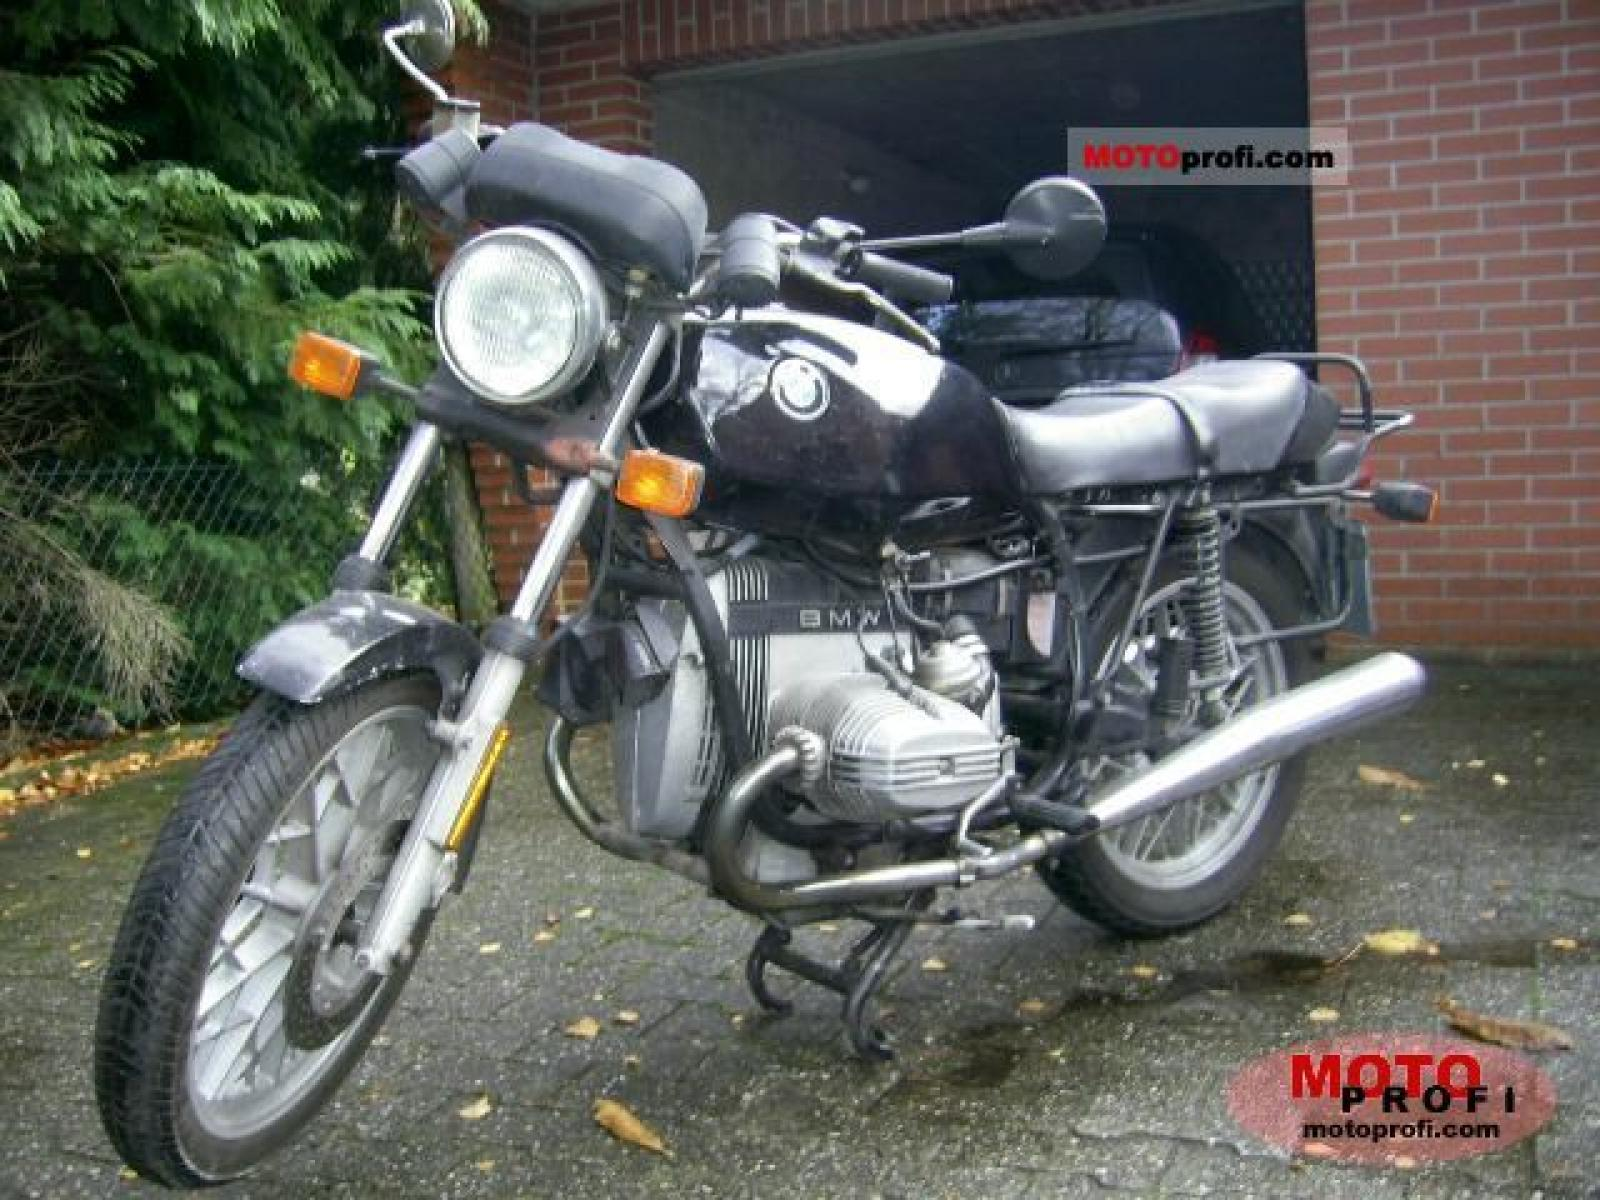 BMW R45 (reduced effect) 1985 images #77159